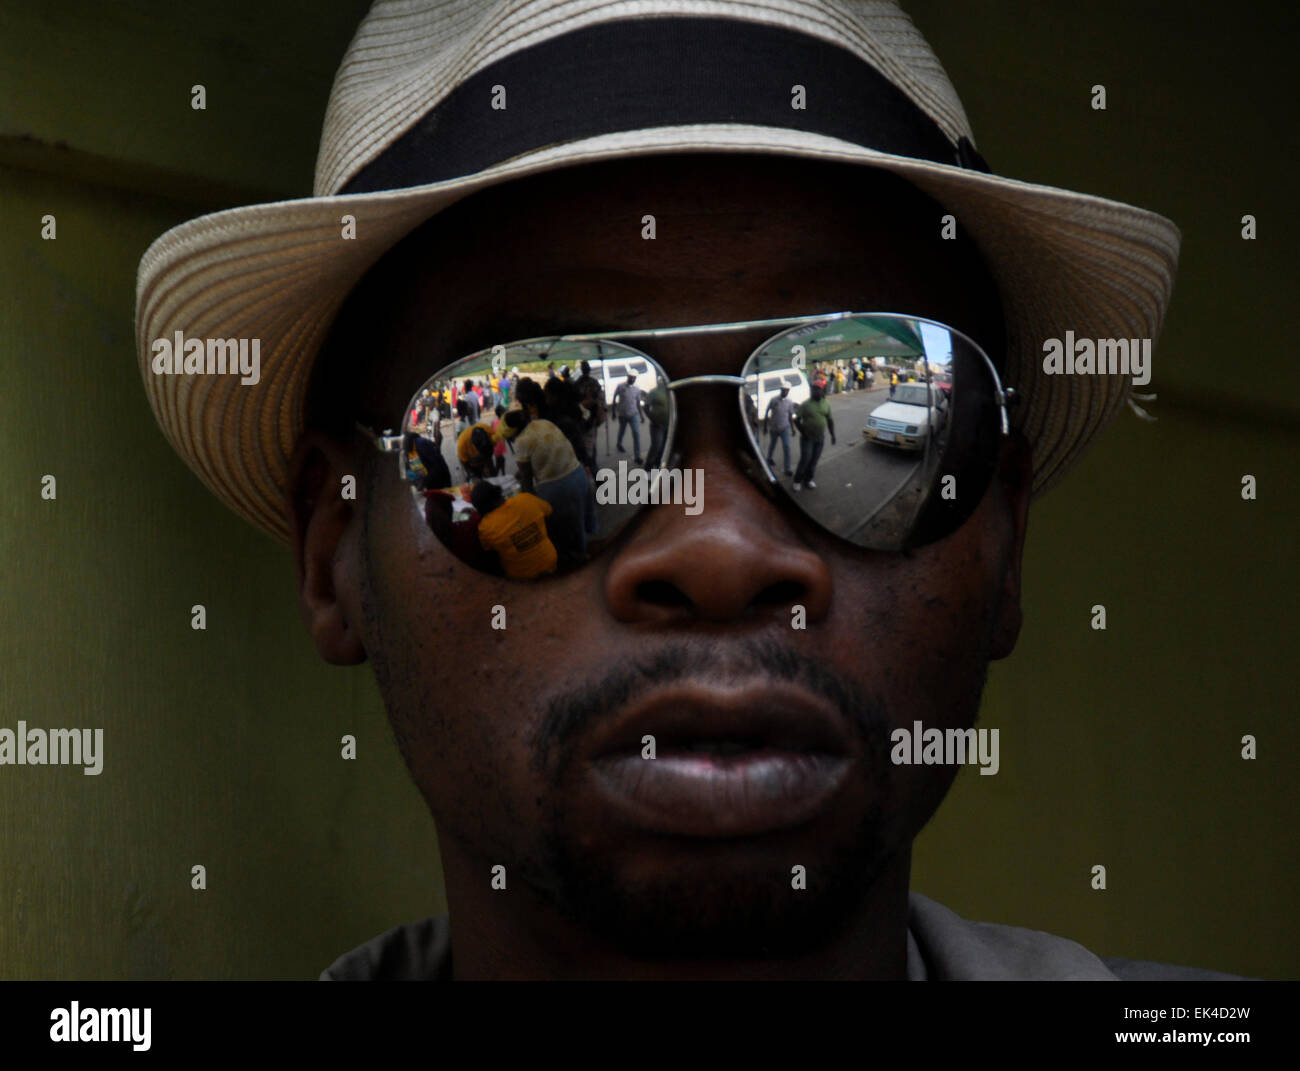 Voters reflected in the glasses of Siya, a man sitting near the voting station in Imizamo Yethu, an informal settlement, Stock Photo